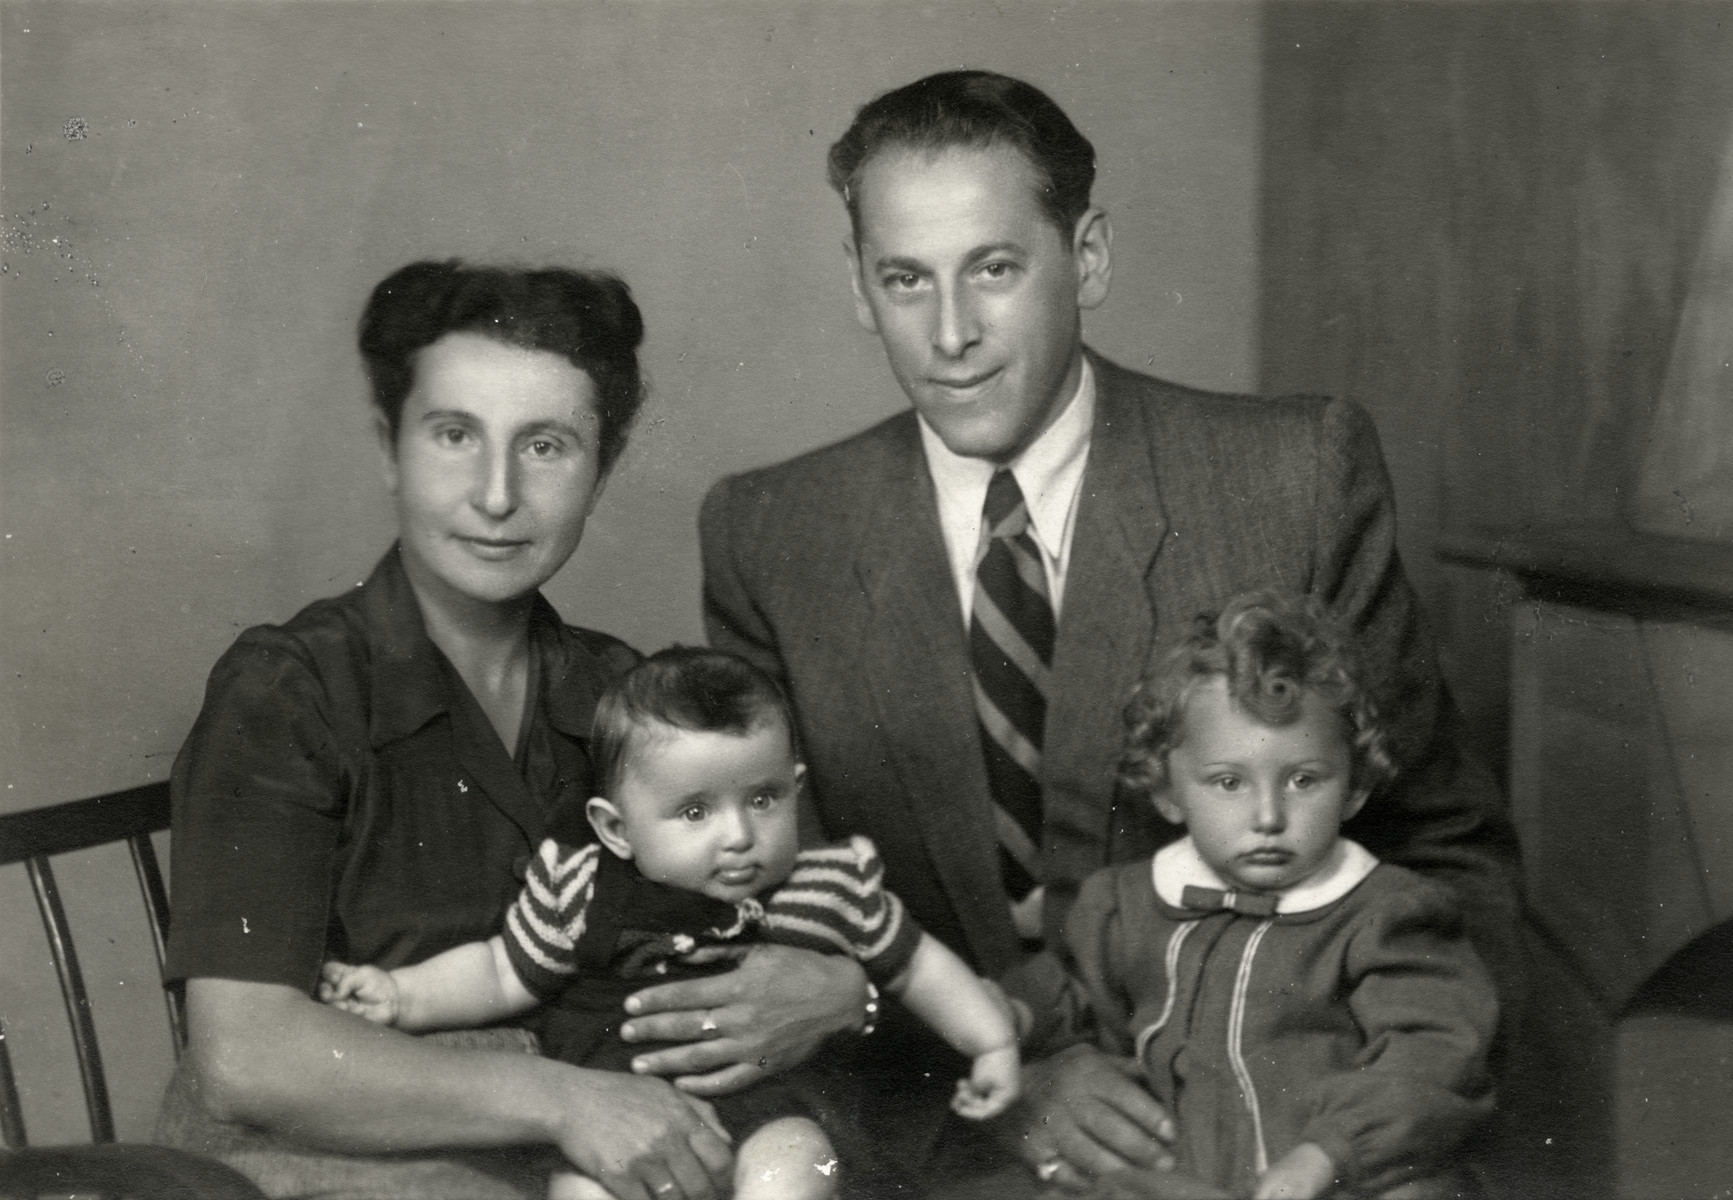 Postwar studio portrait of the Goldberg family in Walbrzych, Poland.  Elze Goldberg is holding their baby Chava (Eva) and Emil is holding their older daughter Lea.